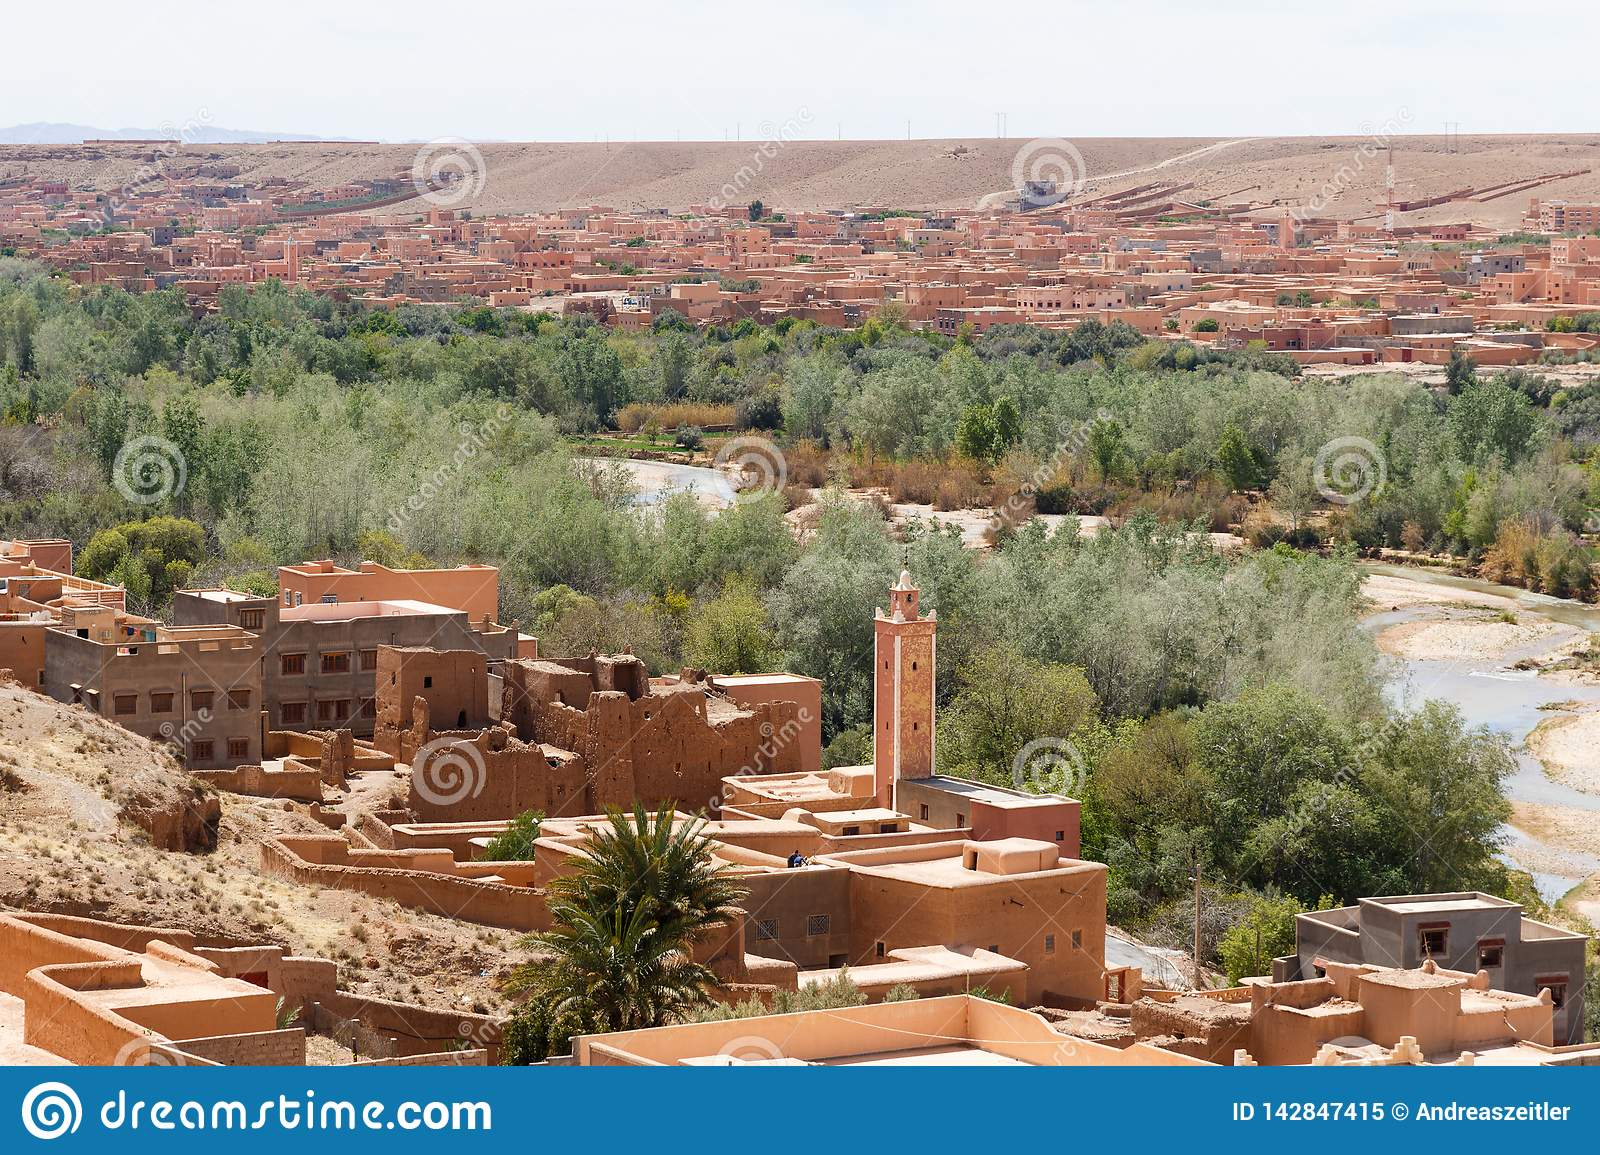 Fortified city along the former caravan route between the Sahara and Marrakech in Morocco with snow covered Atlas mountain range